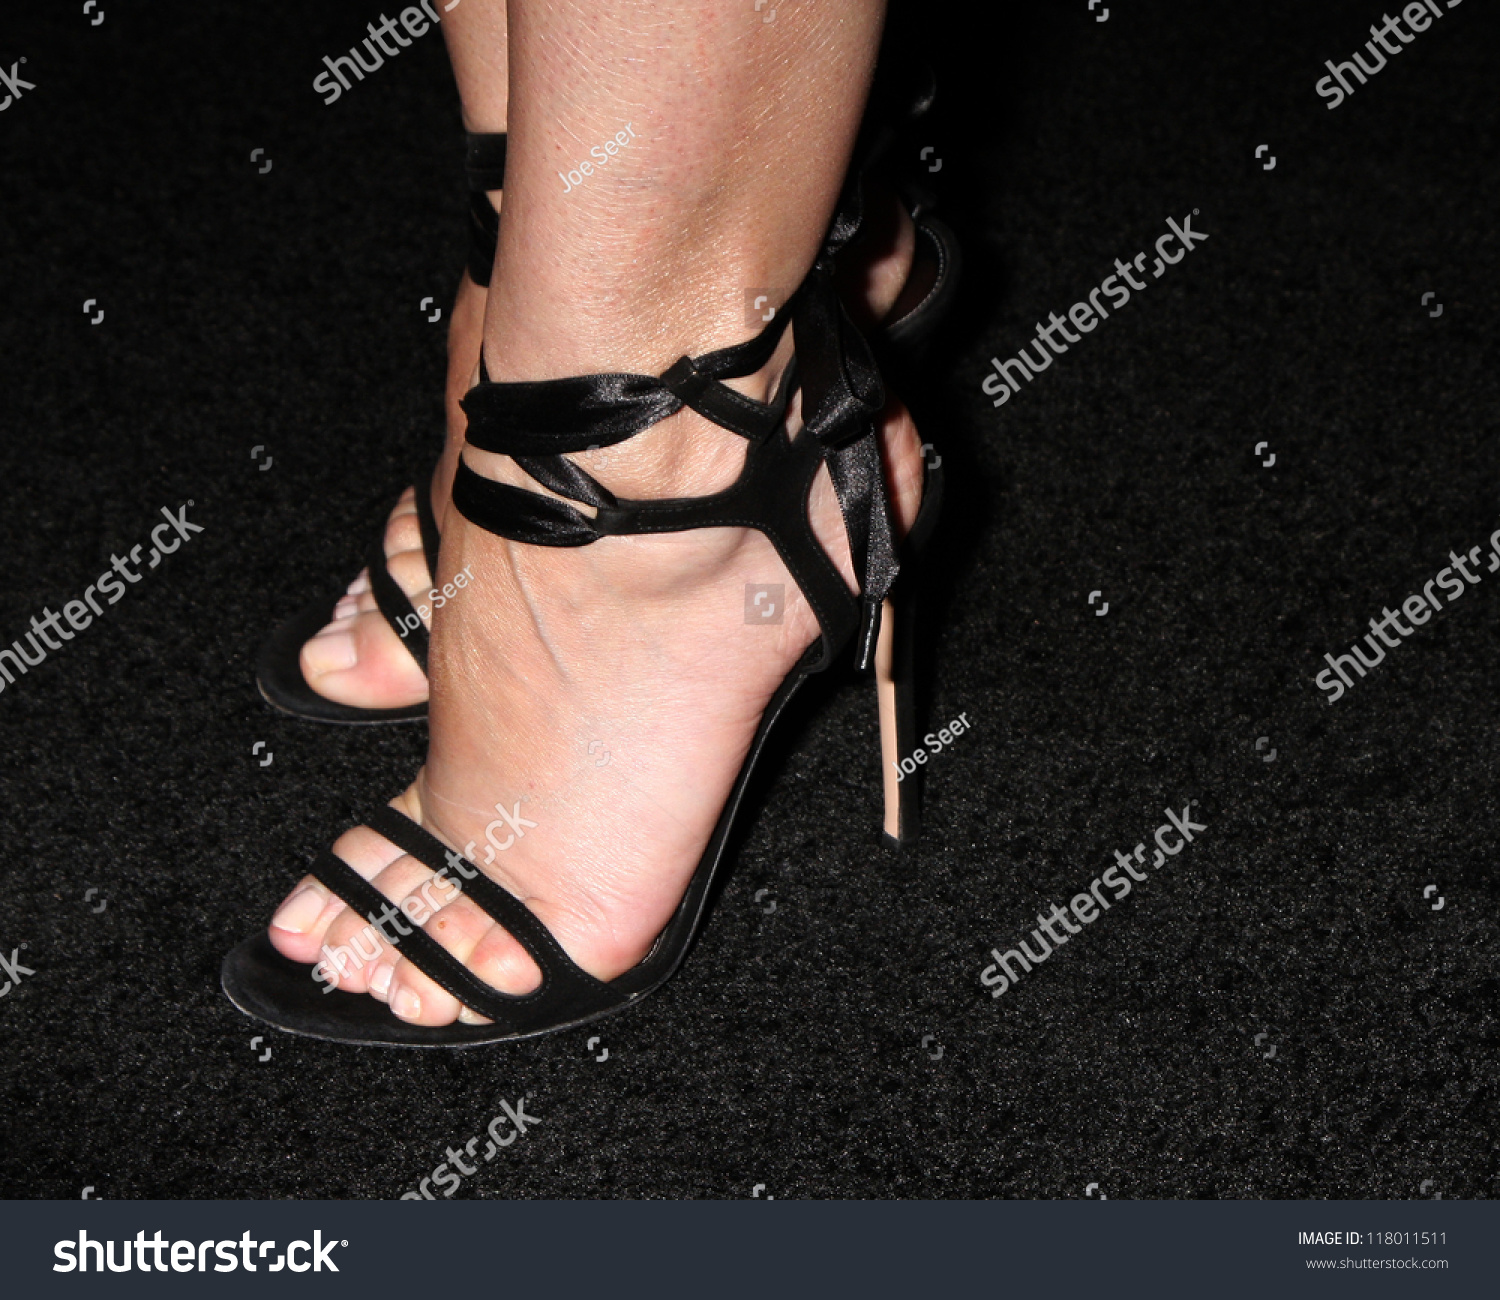 Feet madeleine stowe The Proposition